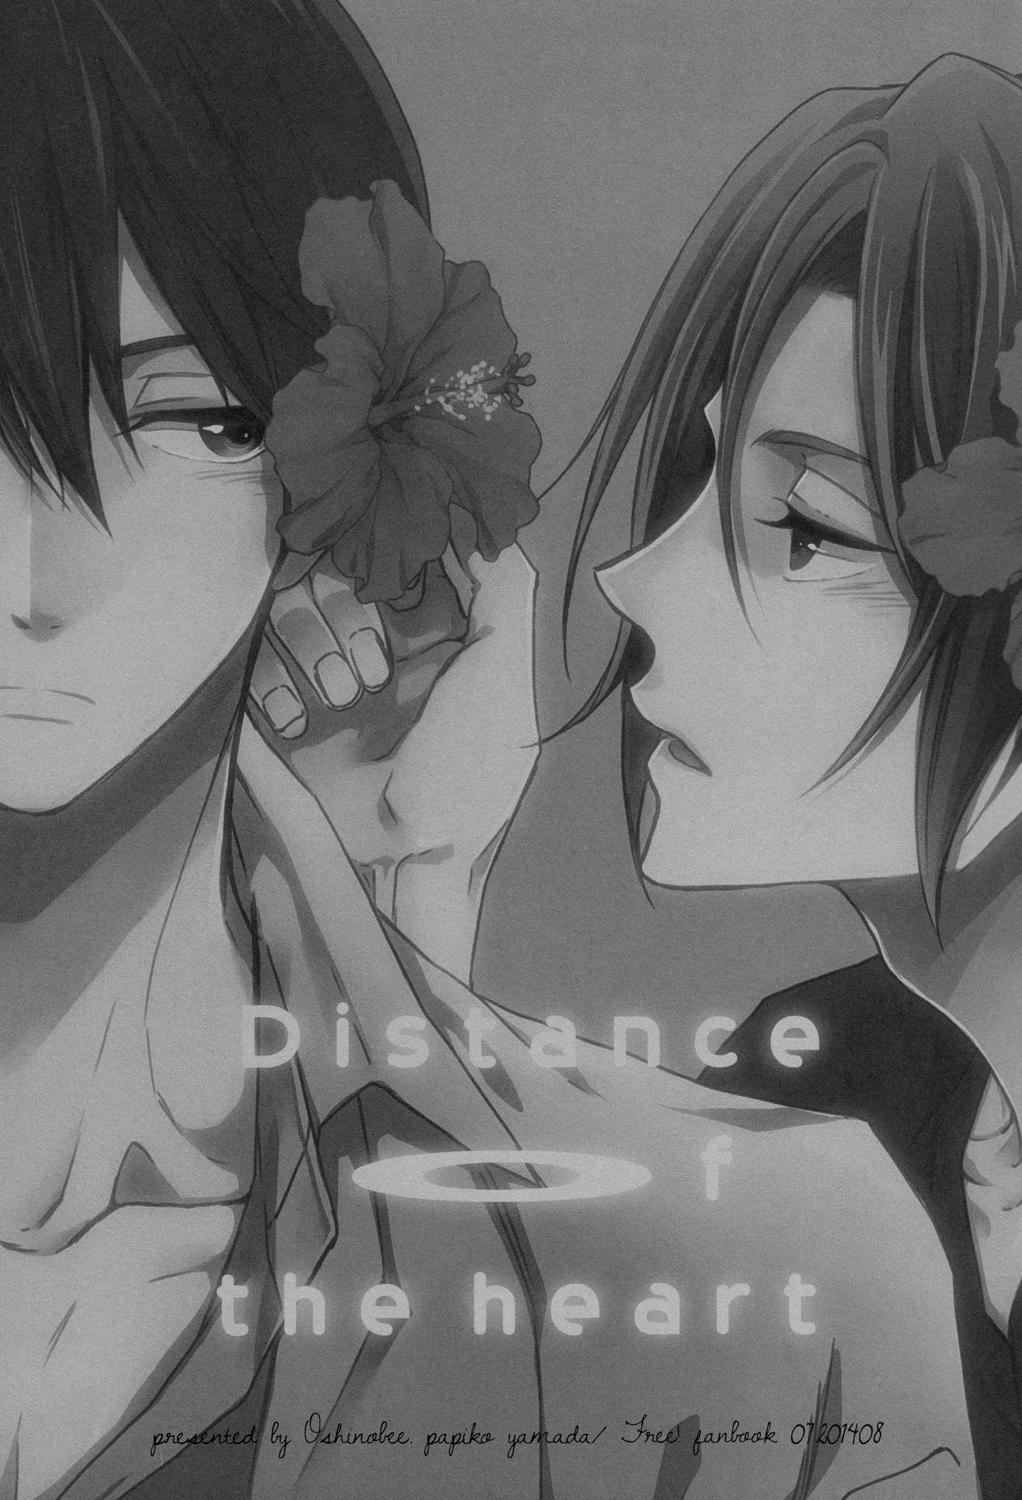 Distance of the heart 1